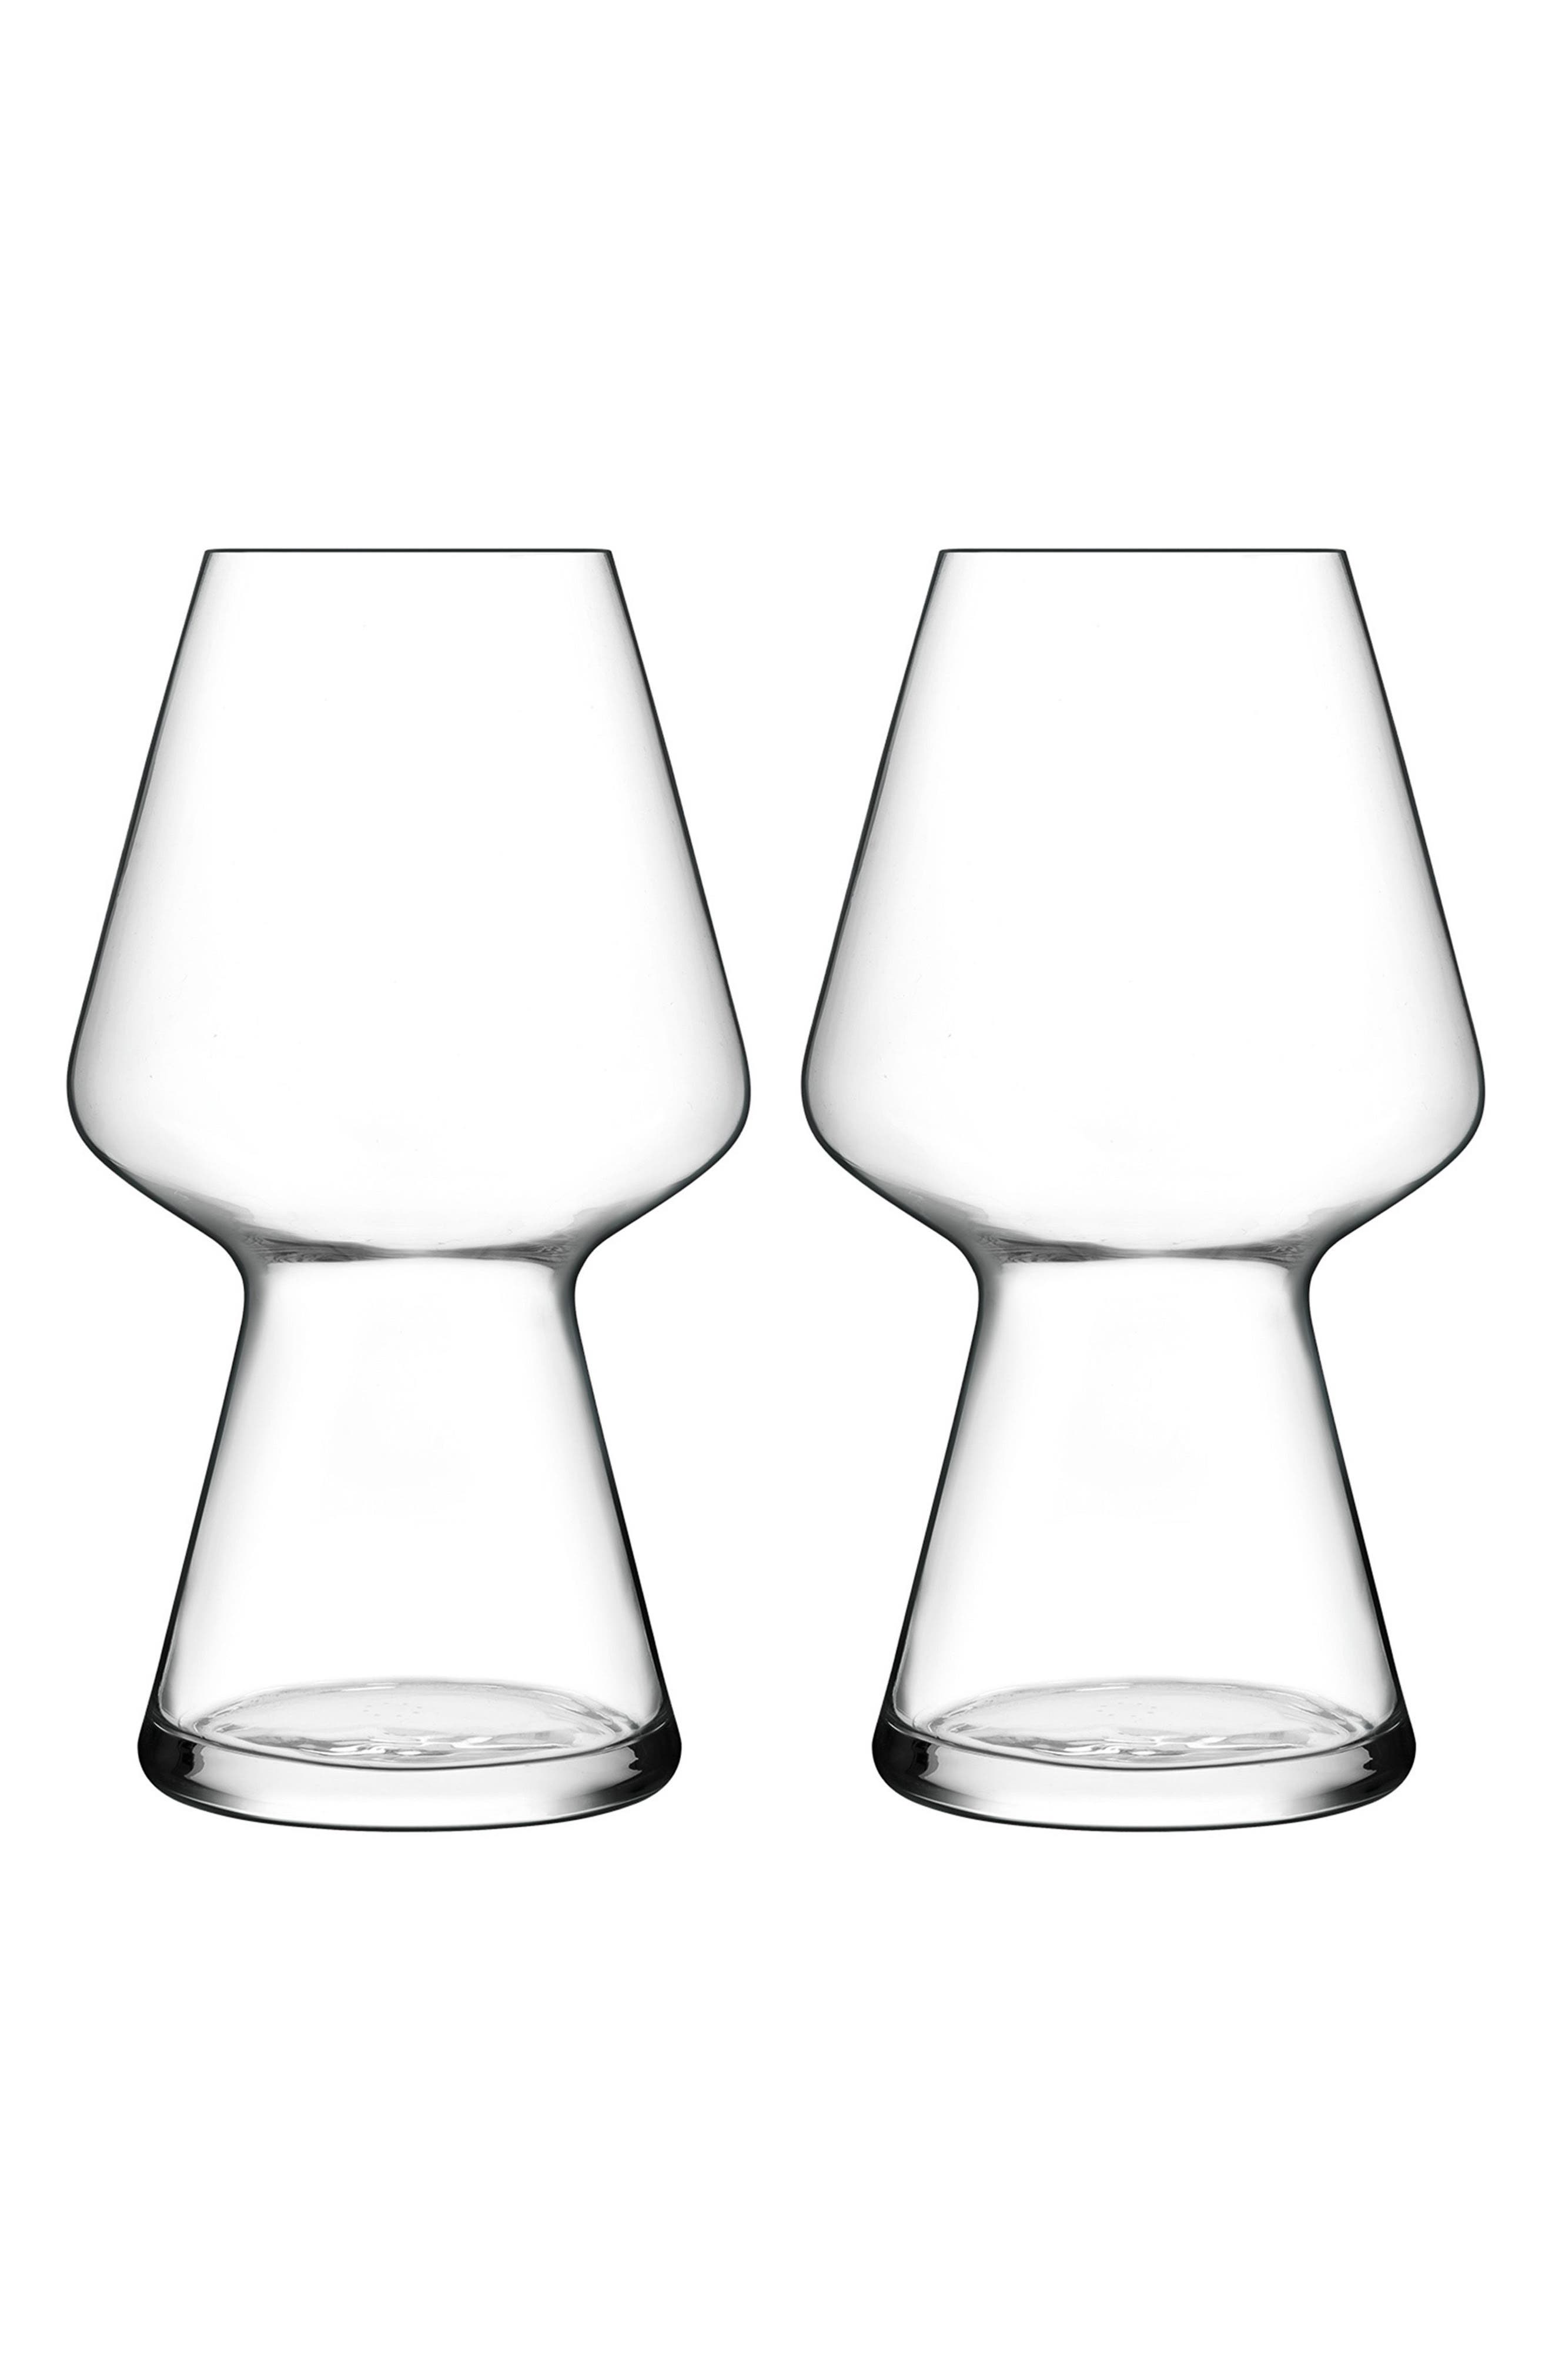 Birrateque Set of 2 Seasonal Beer Glasses,                             Main thumbnail 1, color,                             Clear